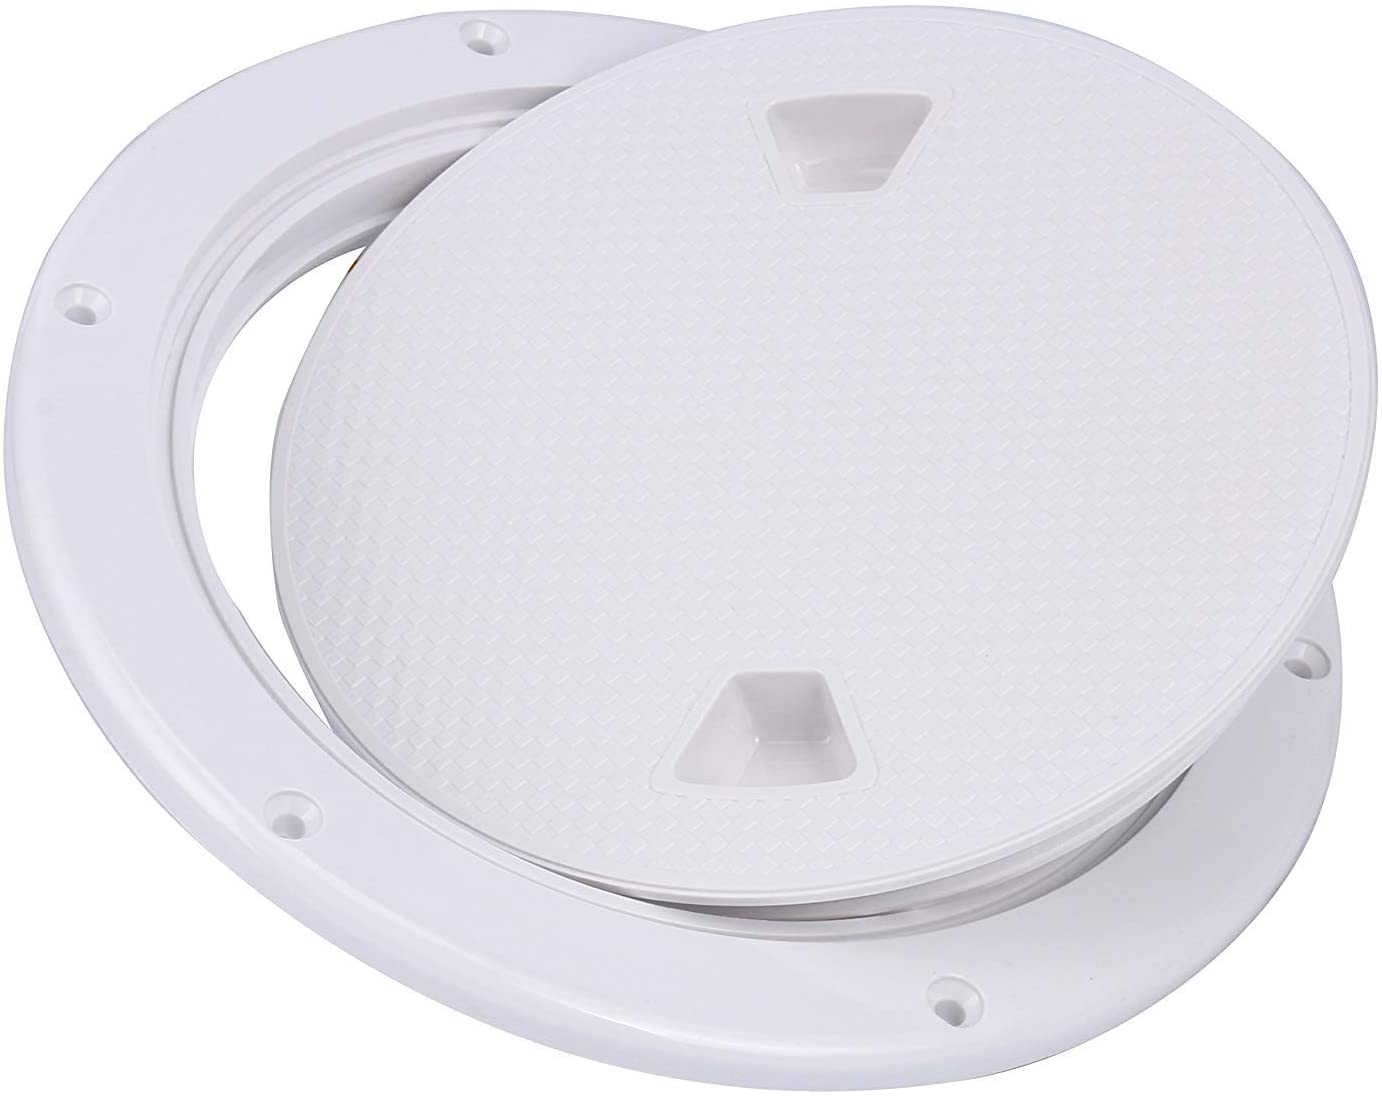 Amarine Made 2 Pack of Boat Round Non Slip Inspection Hatch,Detachable Cover and Pre-drilled Holes in Deck Plate Easily to Install